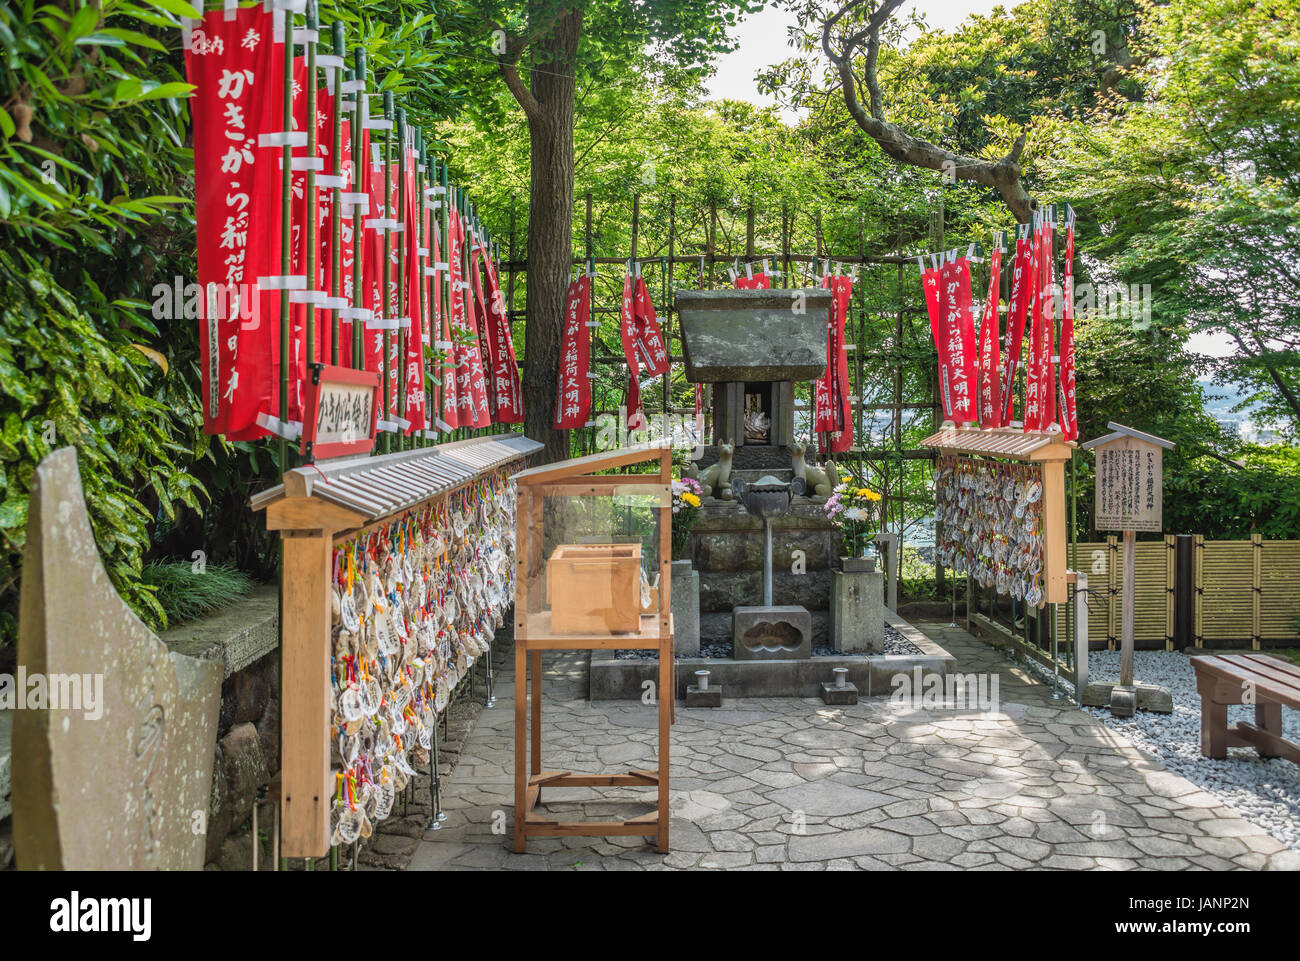 Kakigara Inari Shrine at the Garden of Hase-dera temple, commonly called the Hase-kannon, one of the Buddhist temples - Stock Image